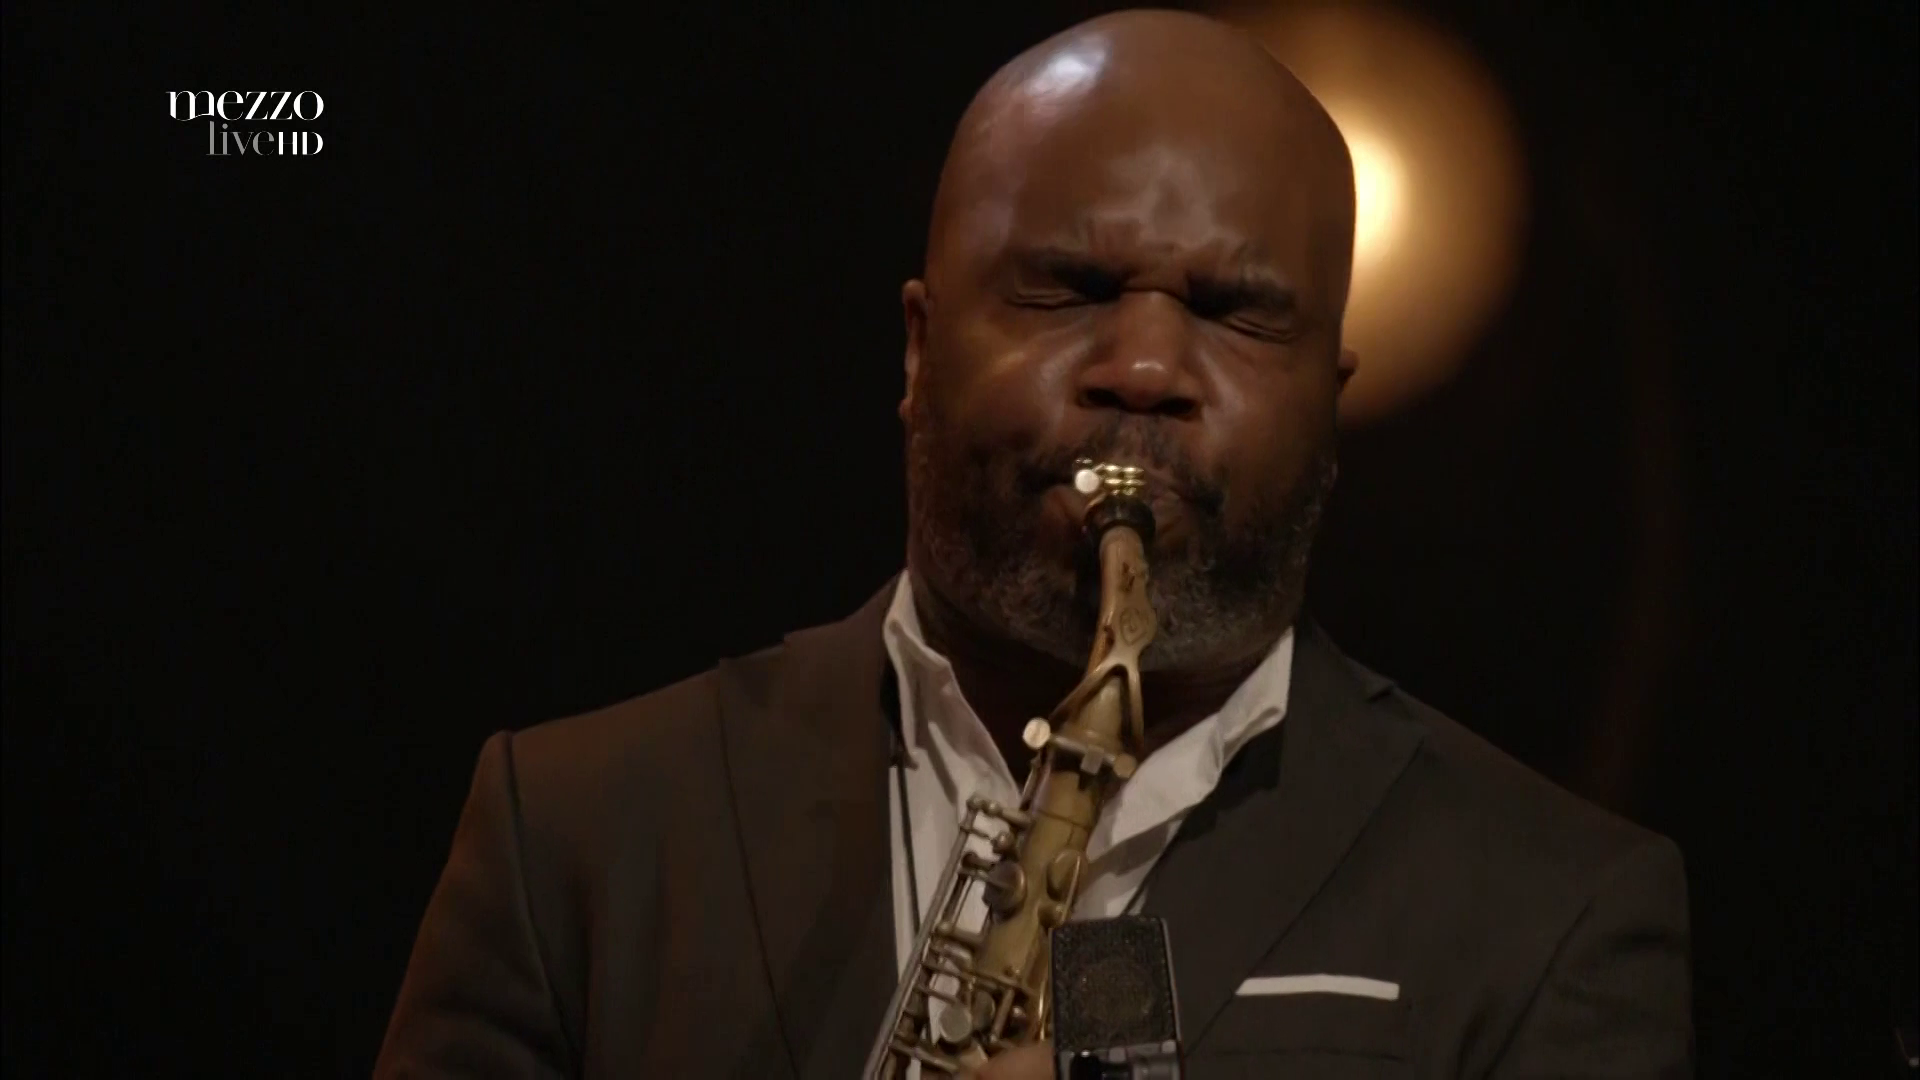 2019 Jazz At The Philharmonie - Charlie Parker - Bird With Strings Revisited [HDTV 1080p] 0